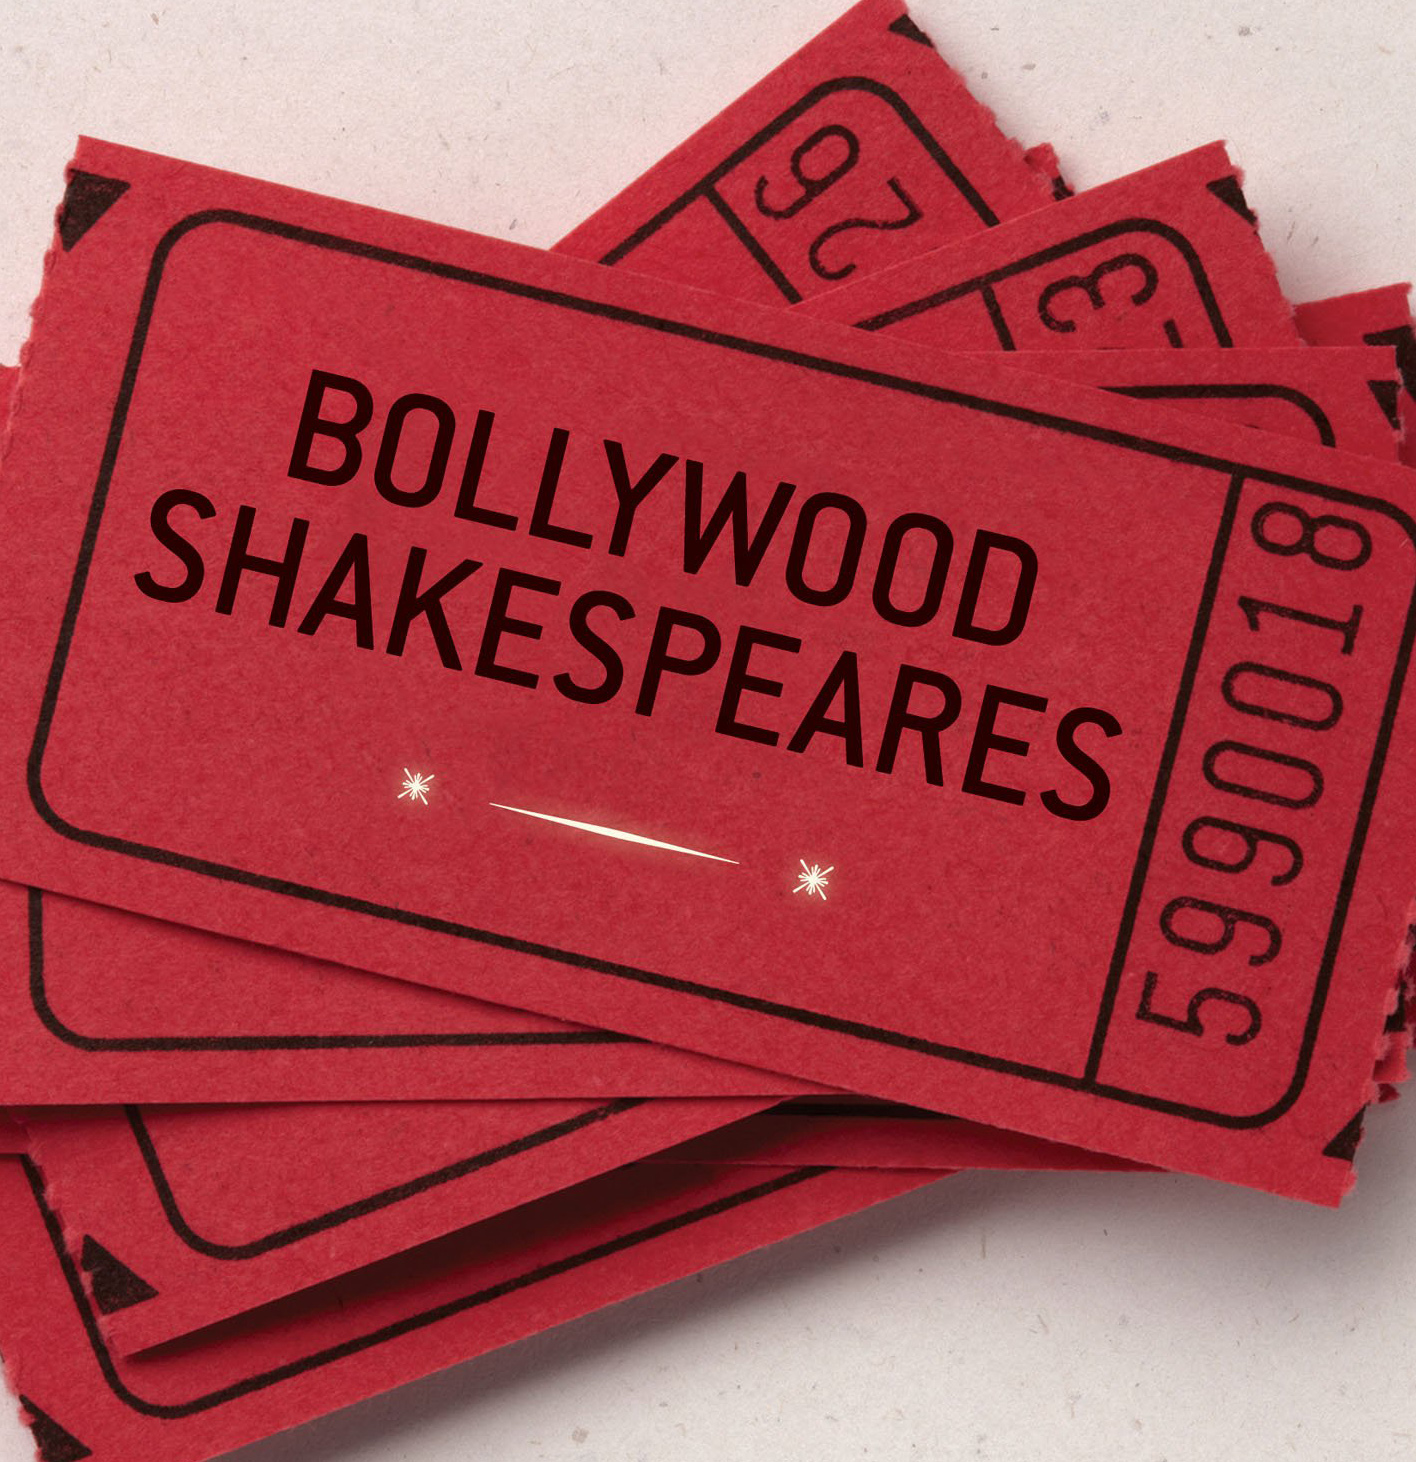 Bollywood-Shakespeares-pm-crop